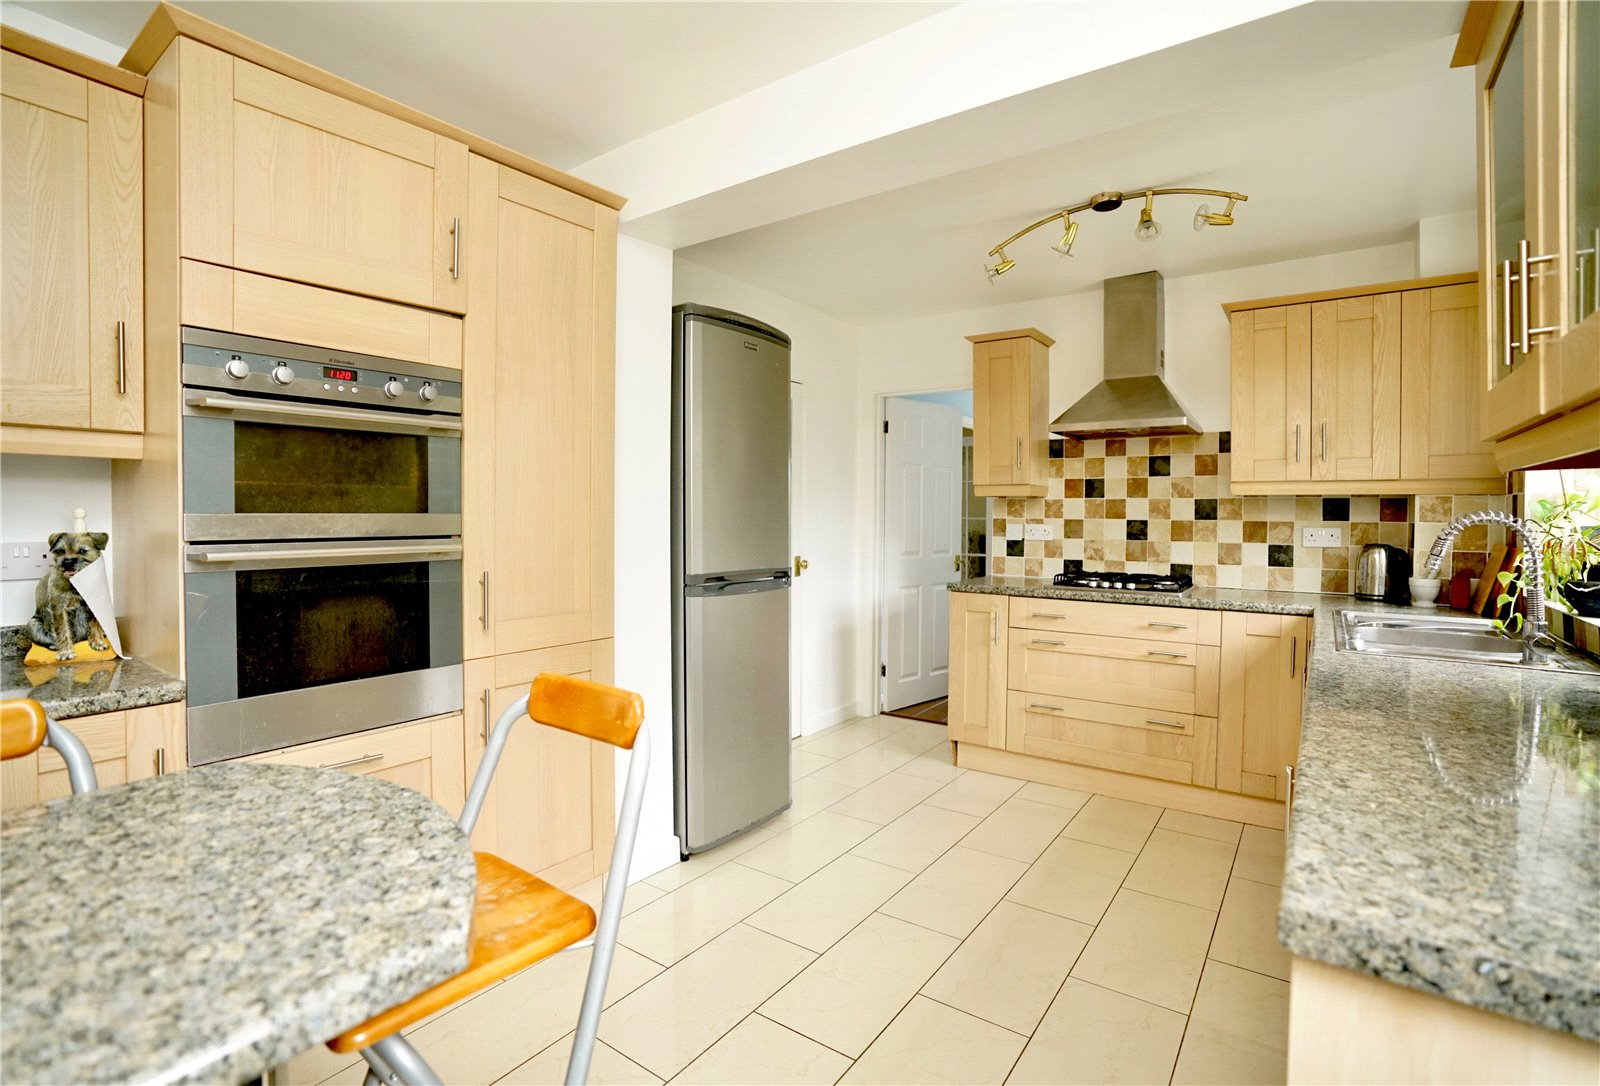 4 bed house for sale in Mint Lane, Great Paxton 3